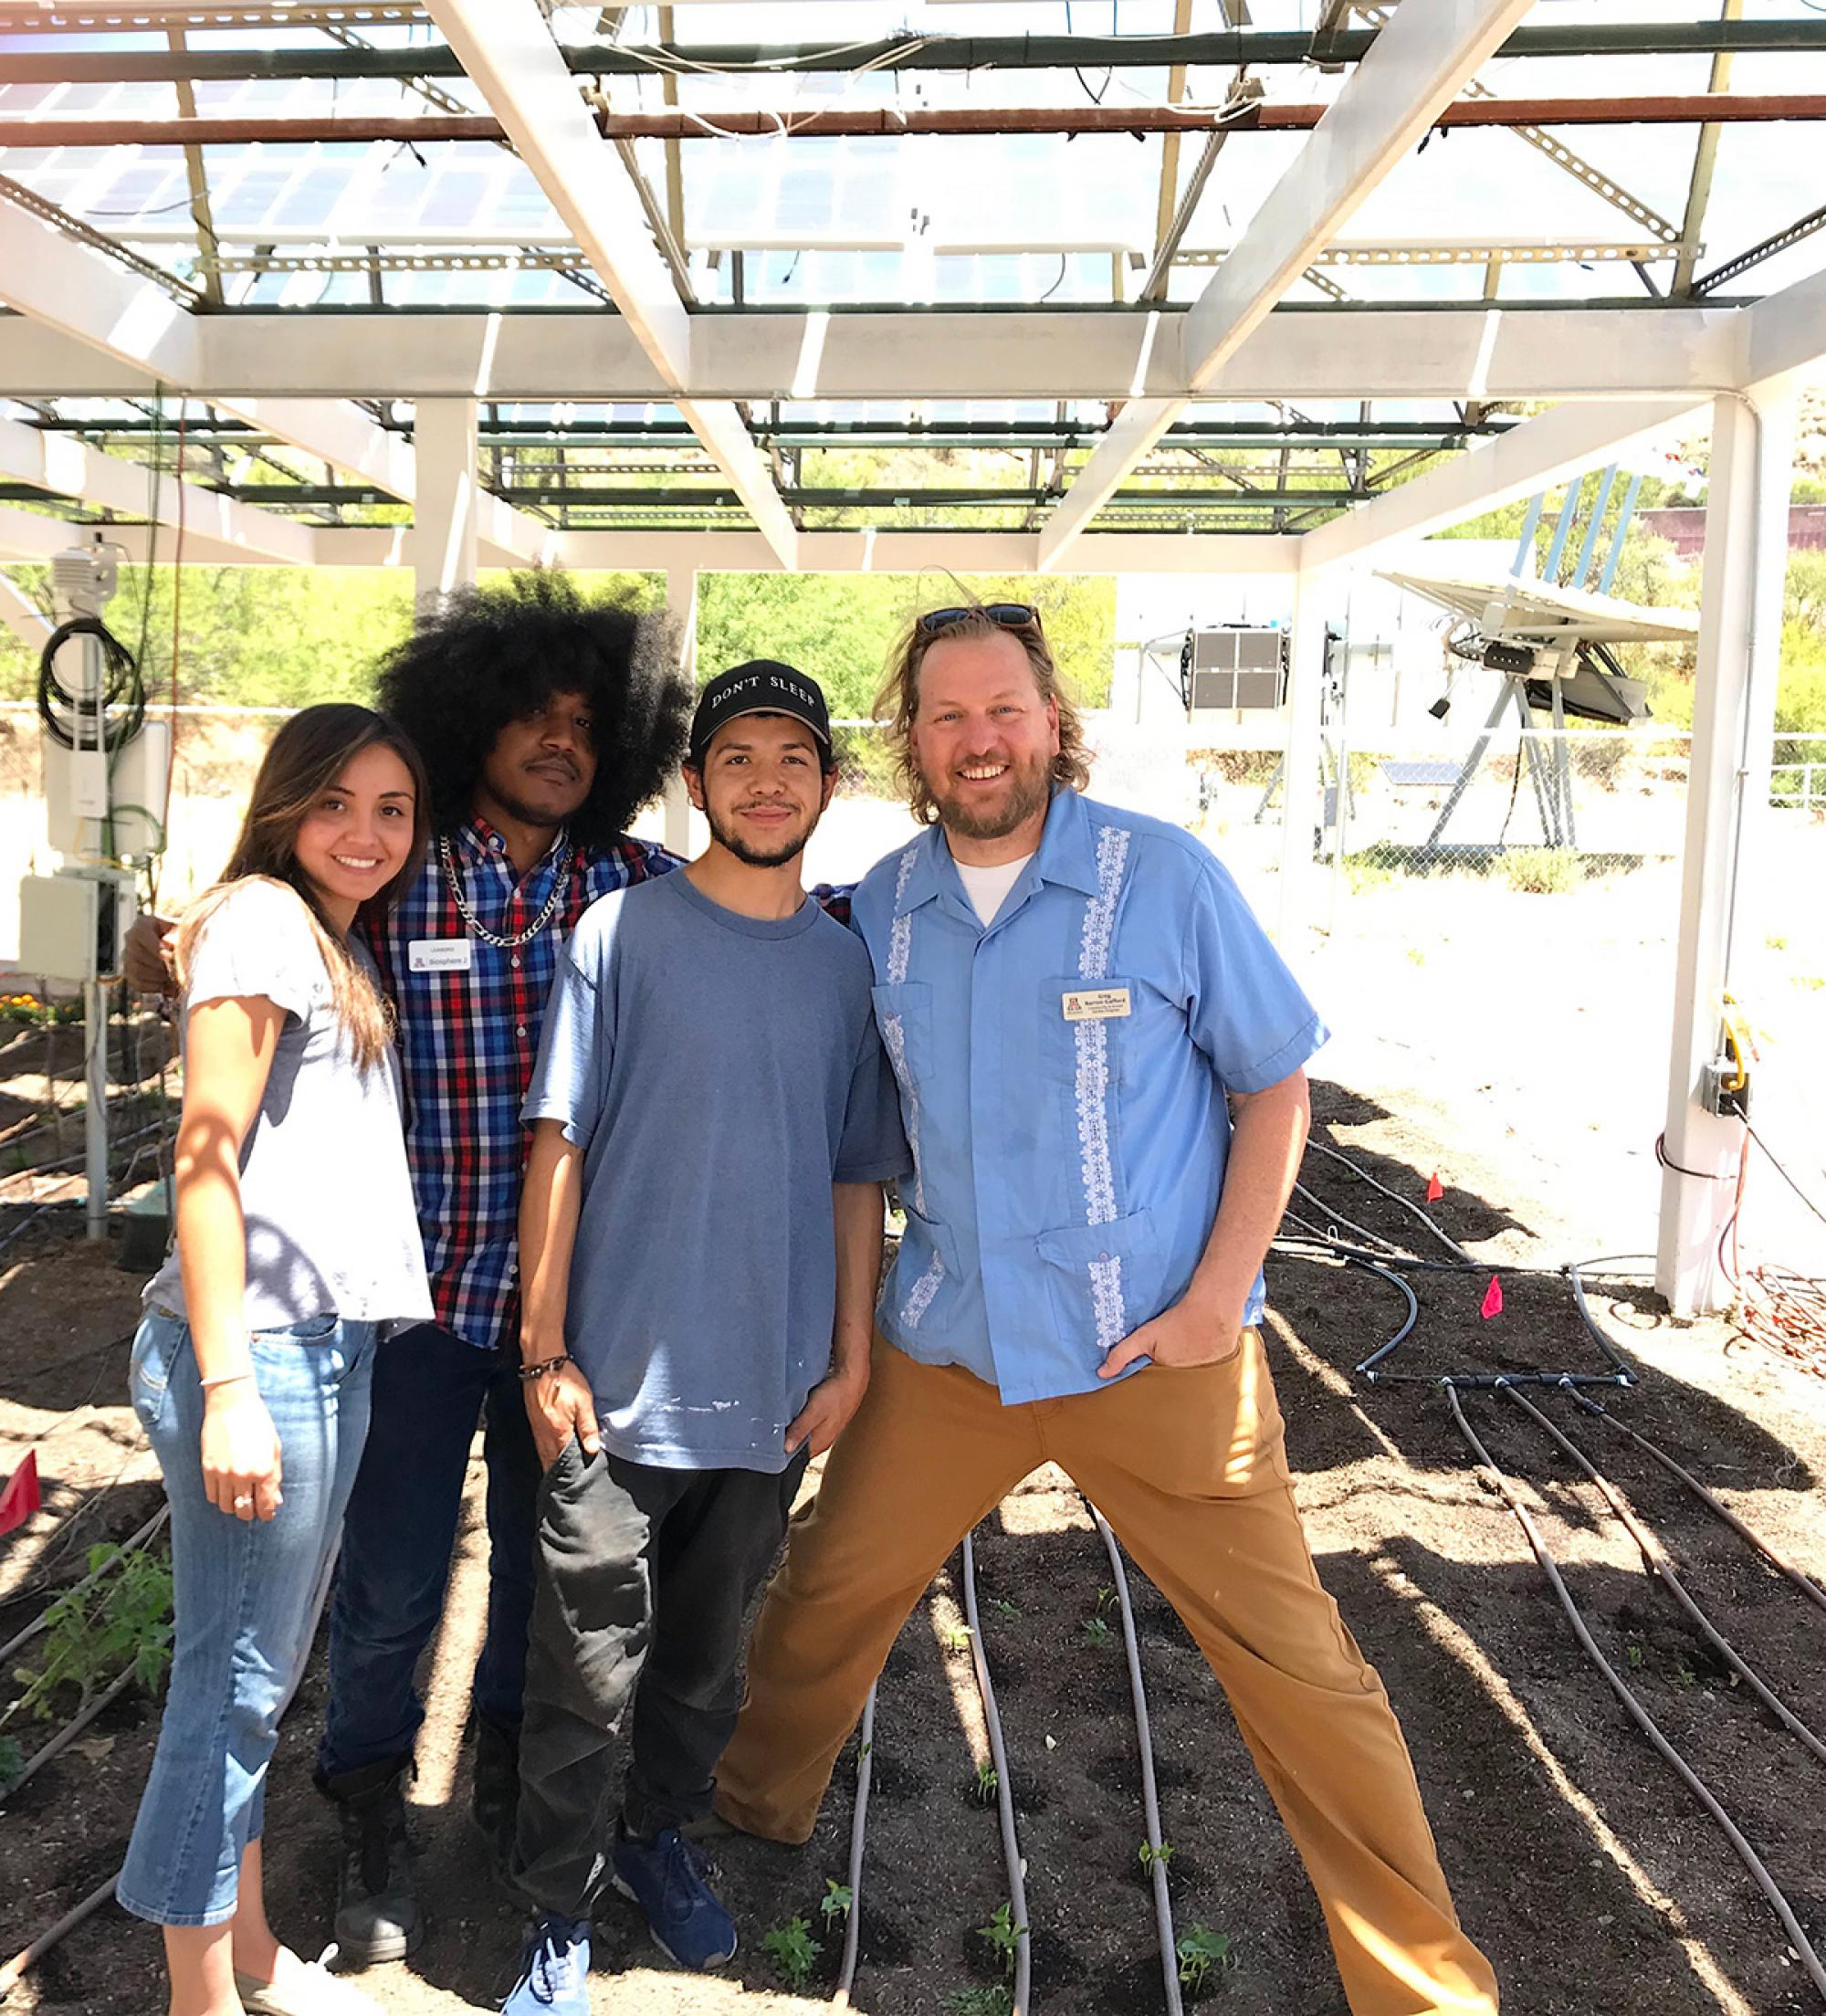 From left: University of Arizona students Alyssa Salazar, Leandro Phelps-Garcia and Isaiah Barnett-Moreno conducted the agrivoltaics research at the Biosphere 2 under the guidance of associate professor Greg Barron-Gafford.